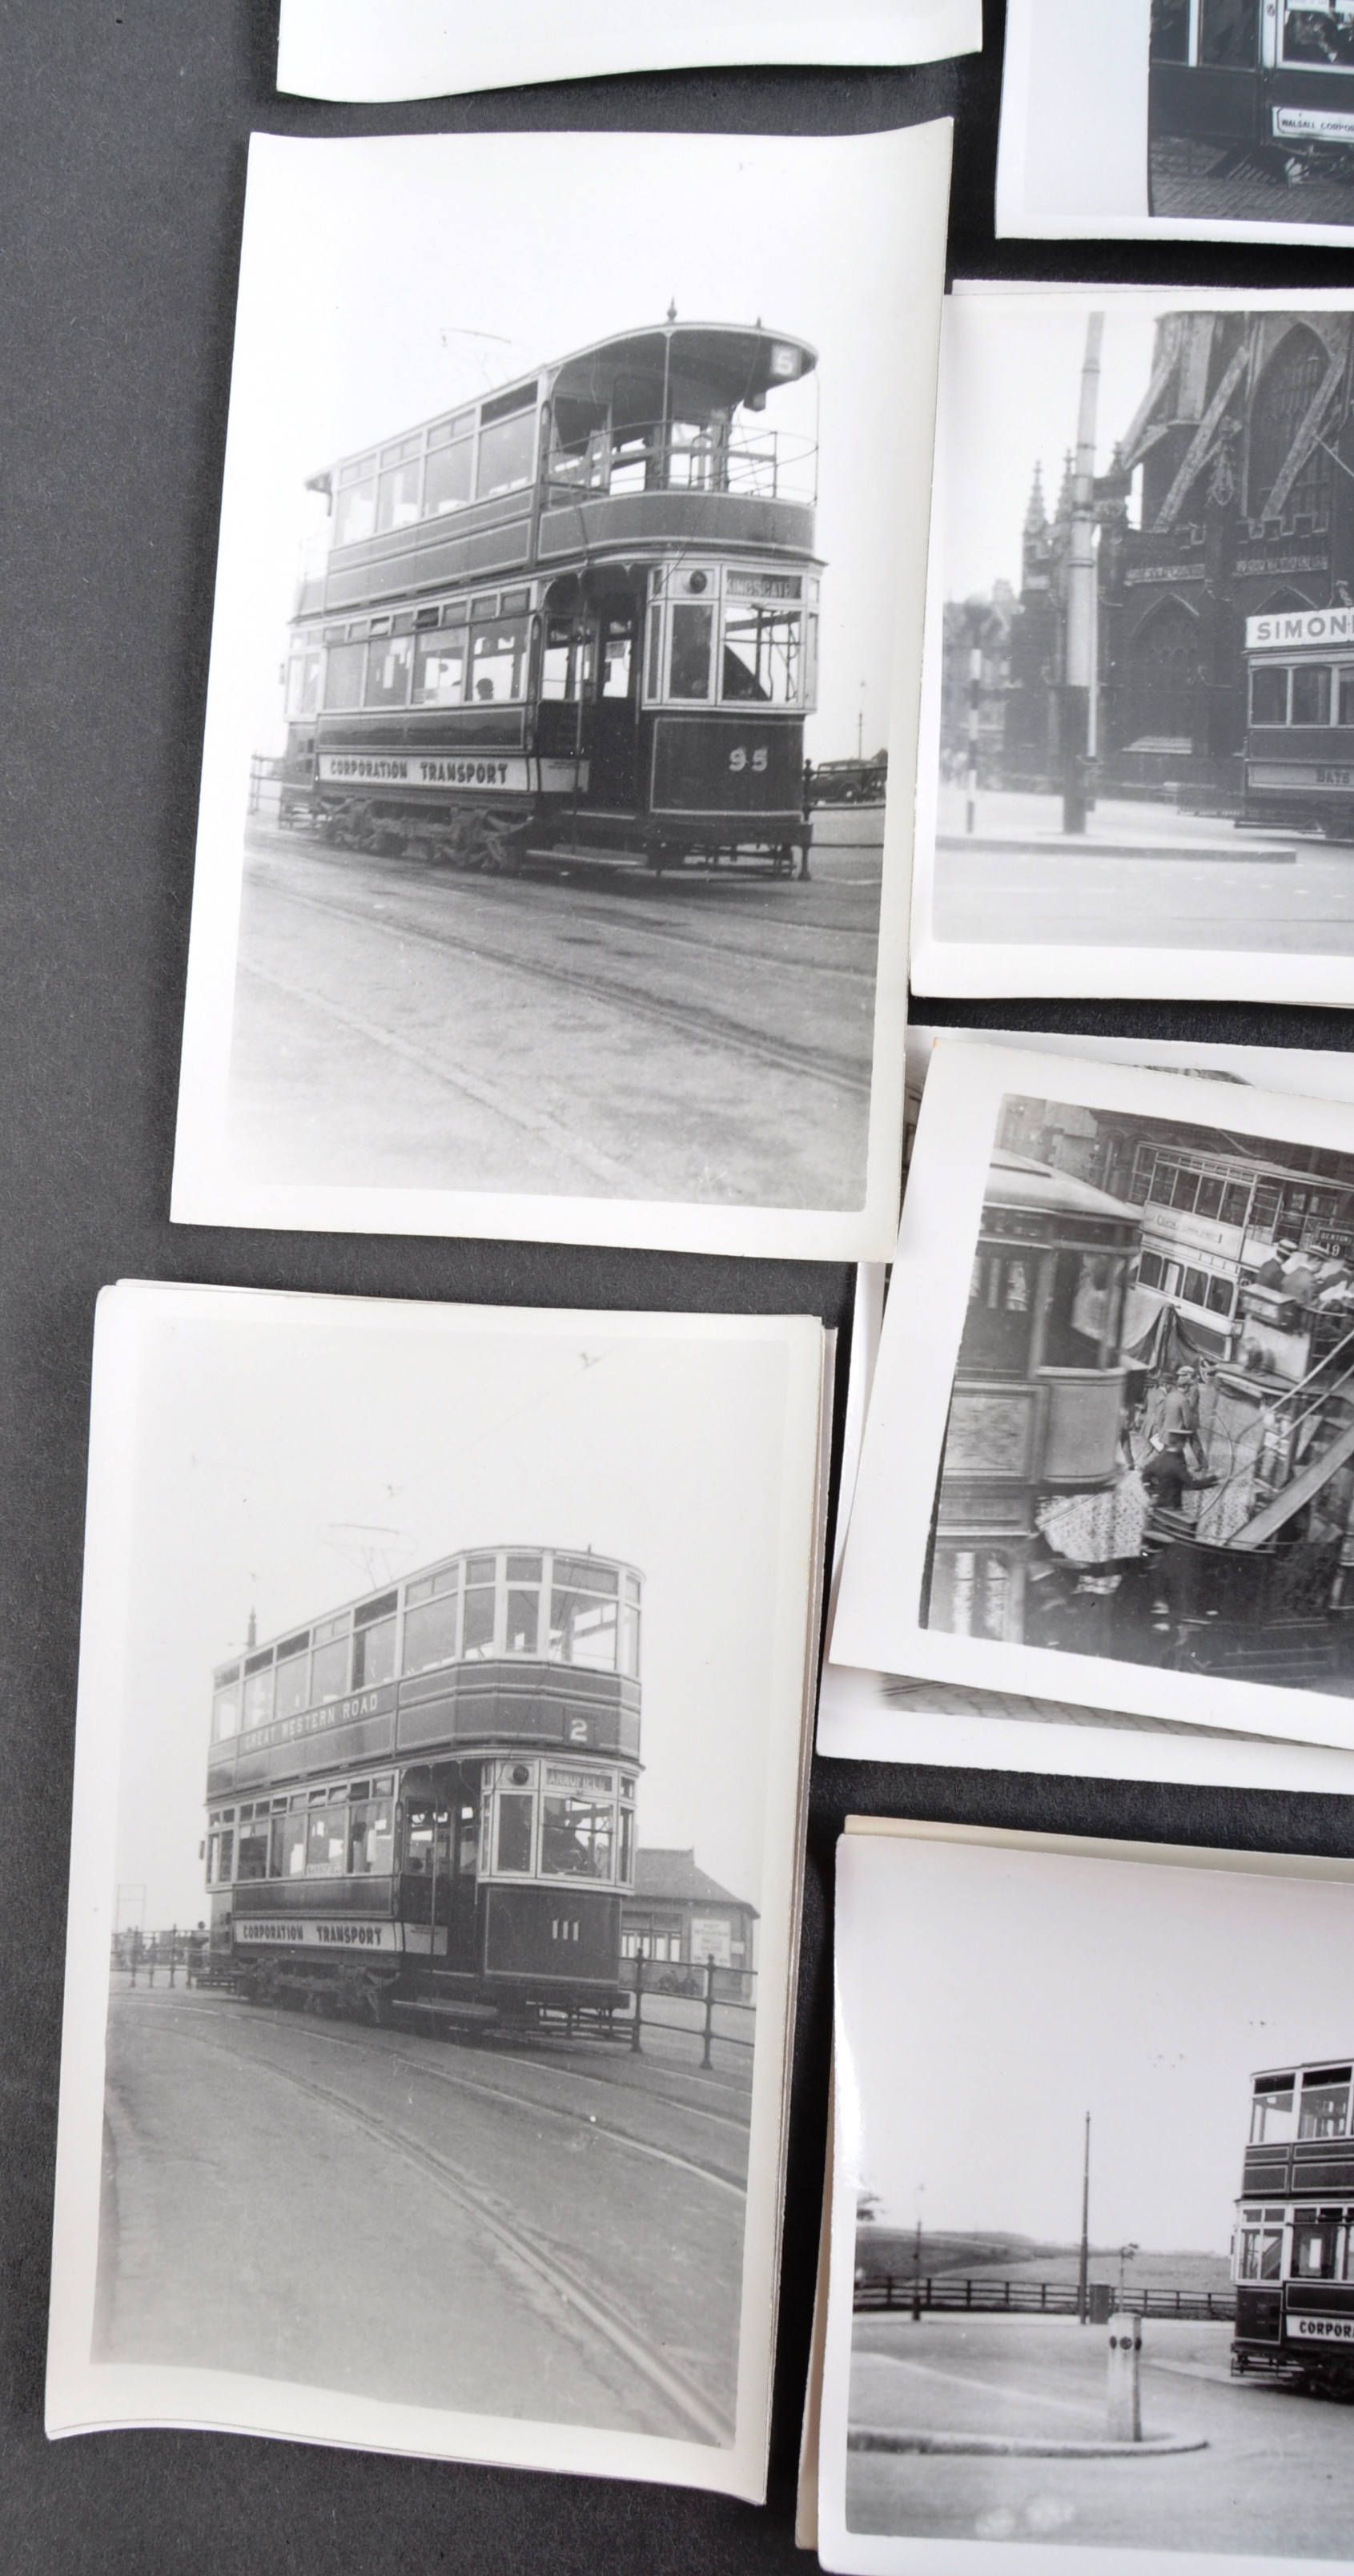 TRAMS & TROLLEY BUSES - LARGE COLLECTION OF BLACK AND WHITE PHOTOS - Image 7 of 9